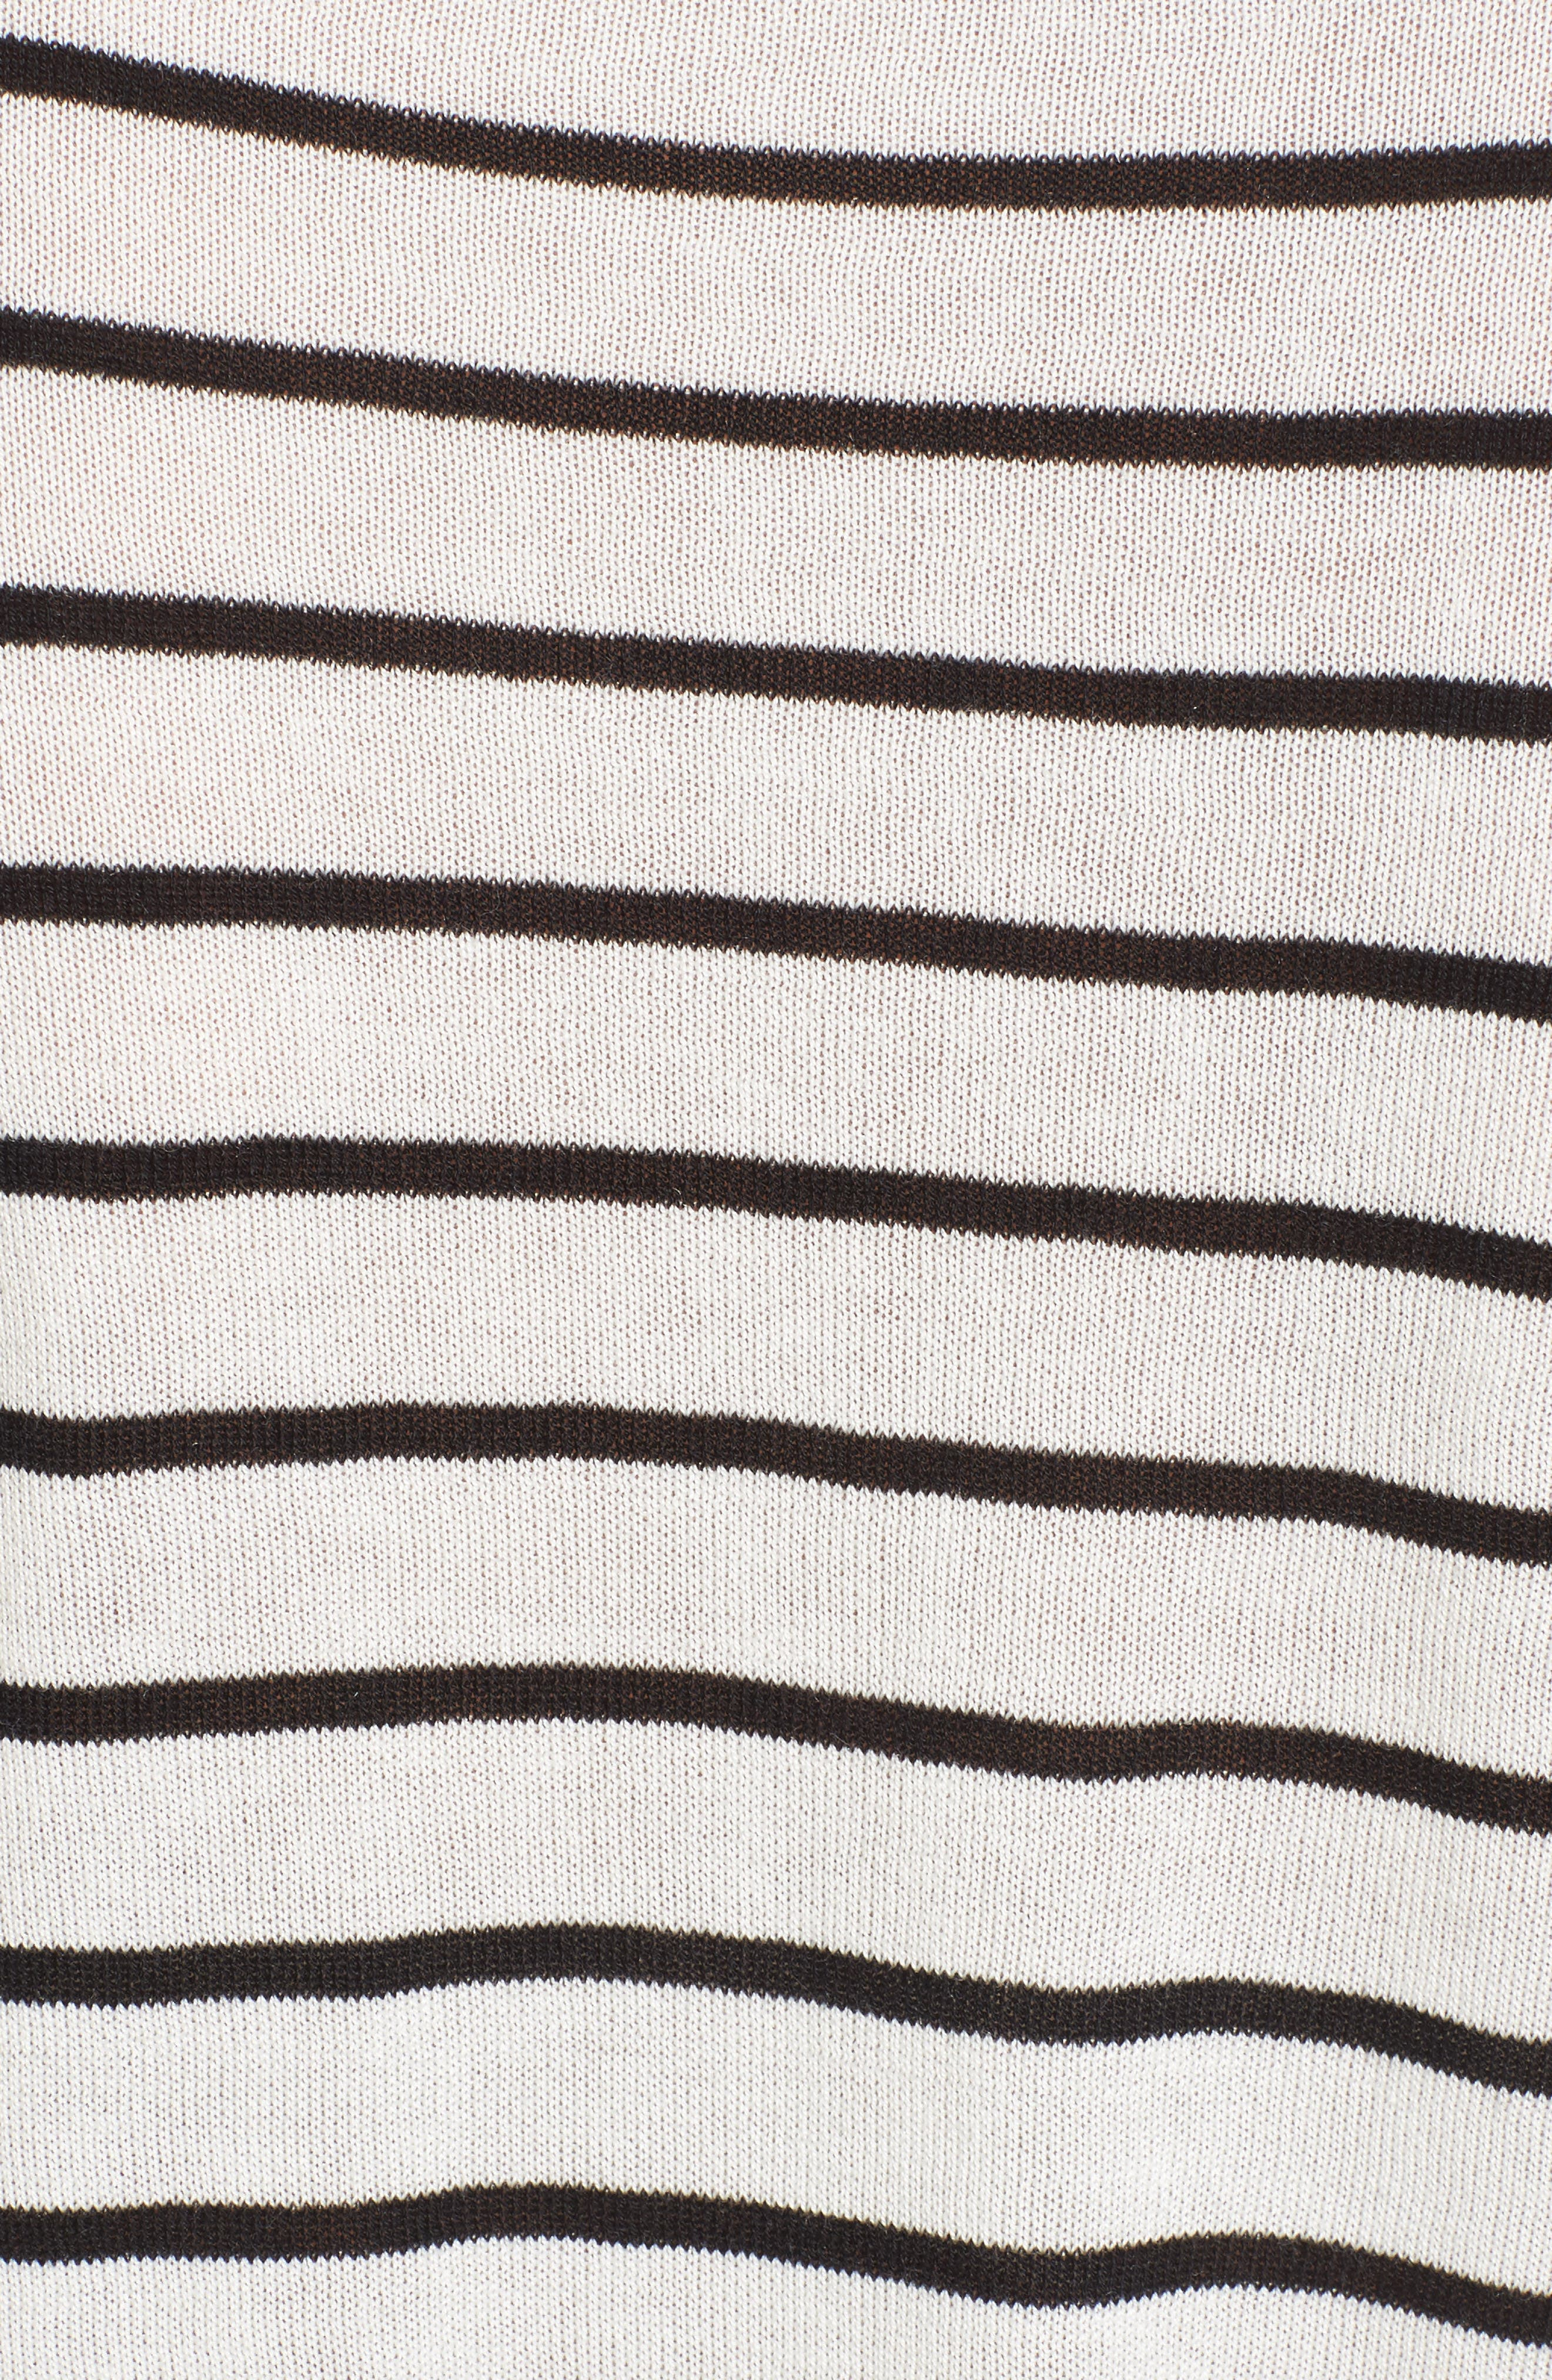 Trapeze Fit Stripe Sweater,                             Alternate thumbnail 5, color,                             907